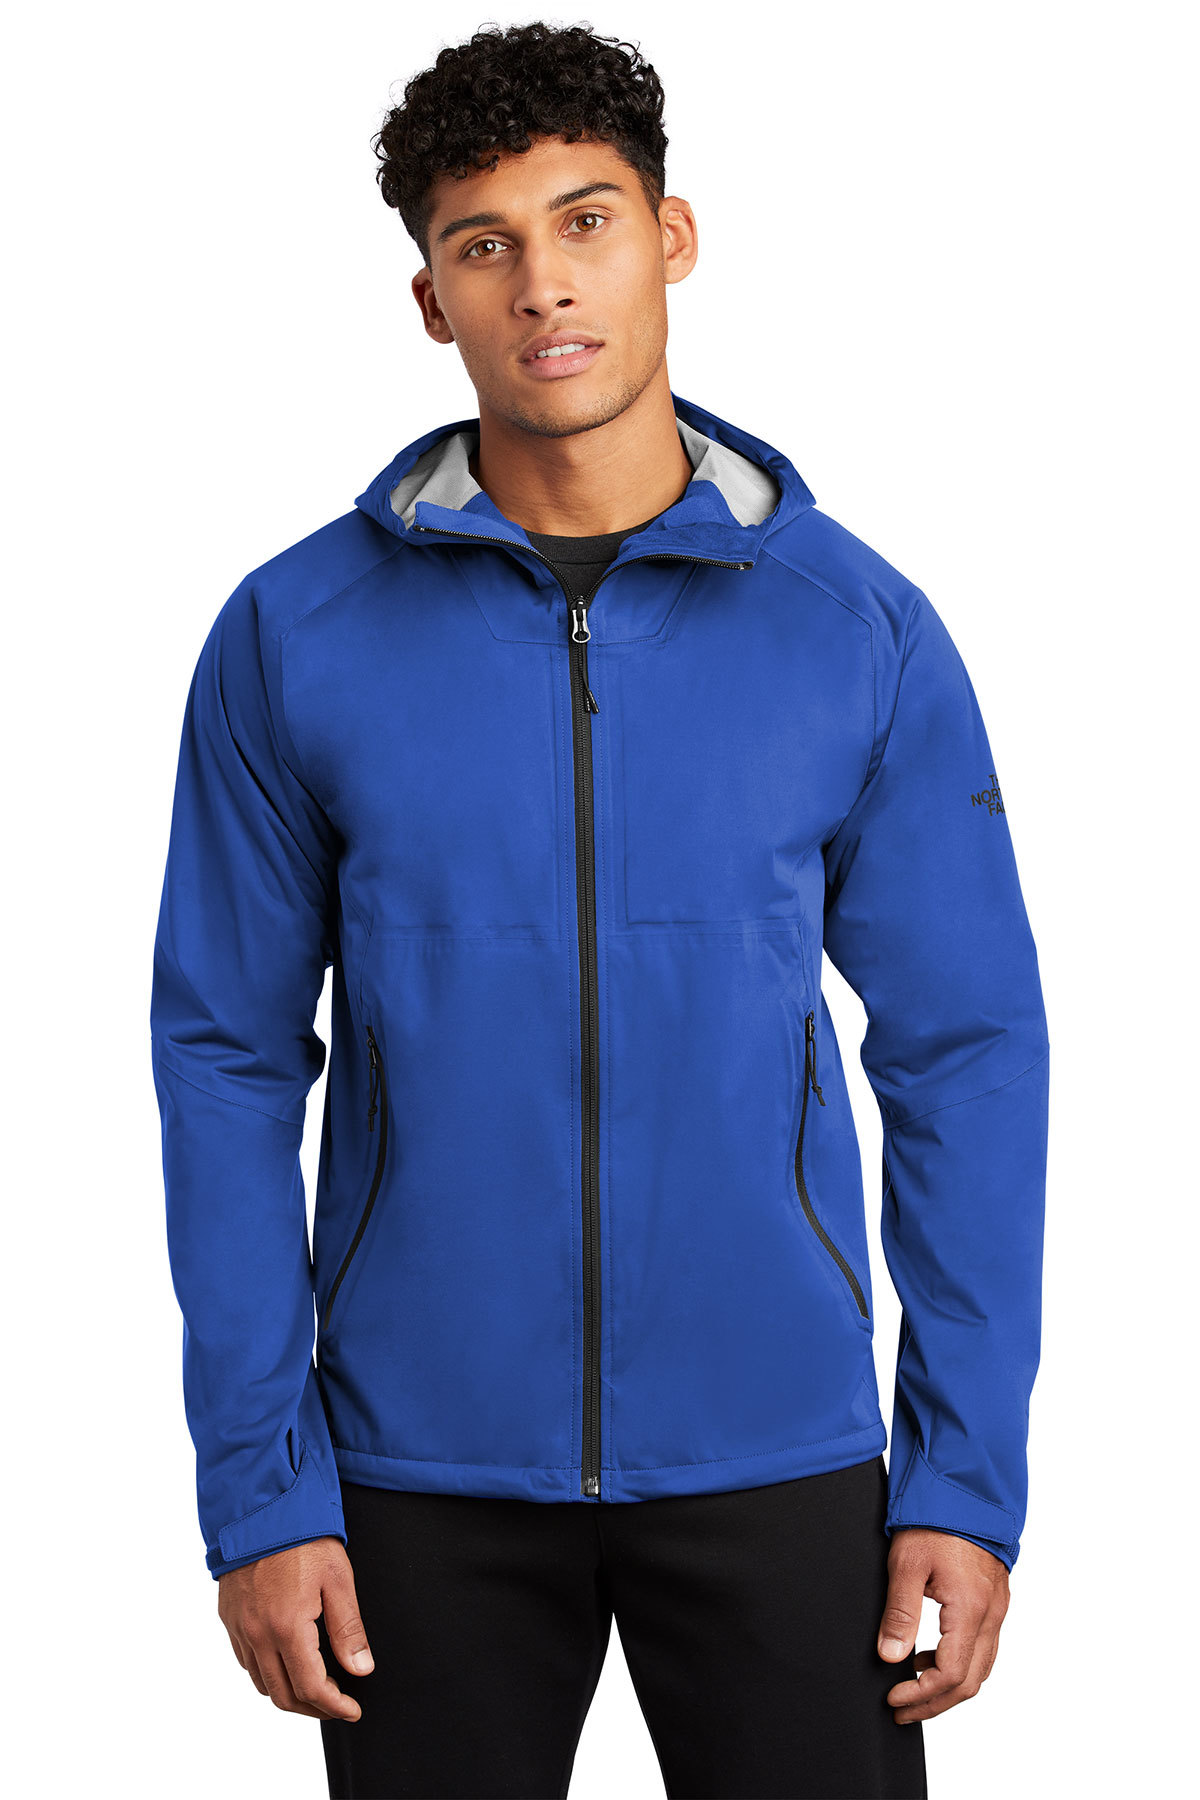 The North Face NF0A47FG - All-Weather DryVent Stretch Jacket